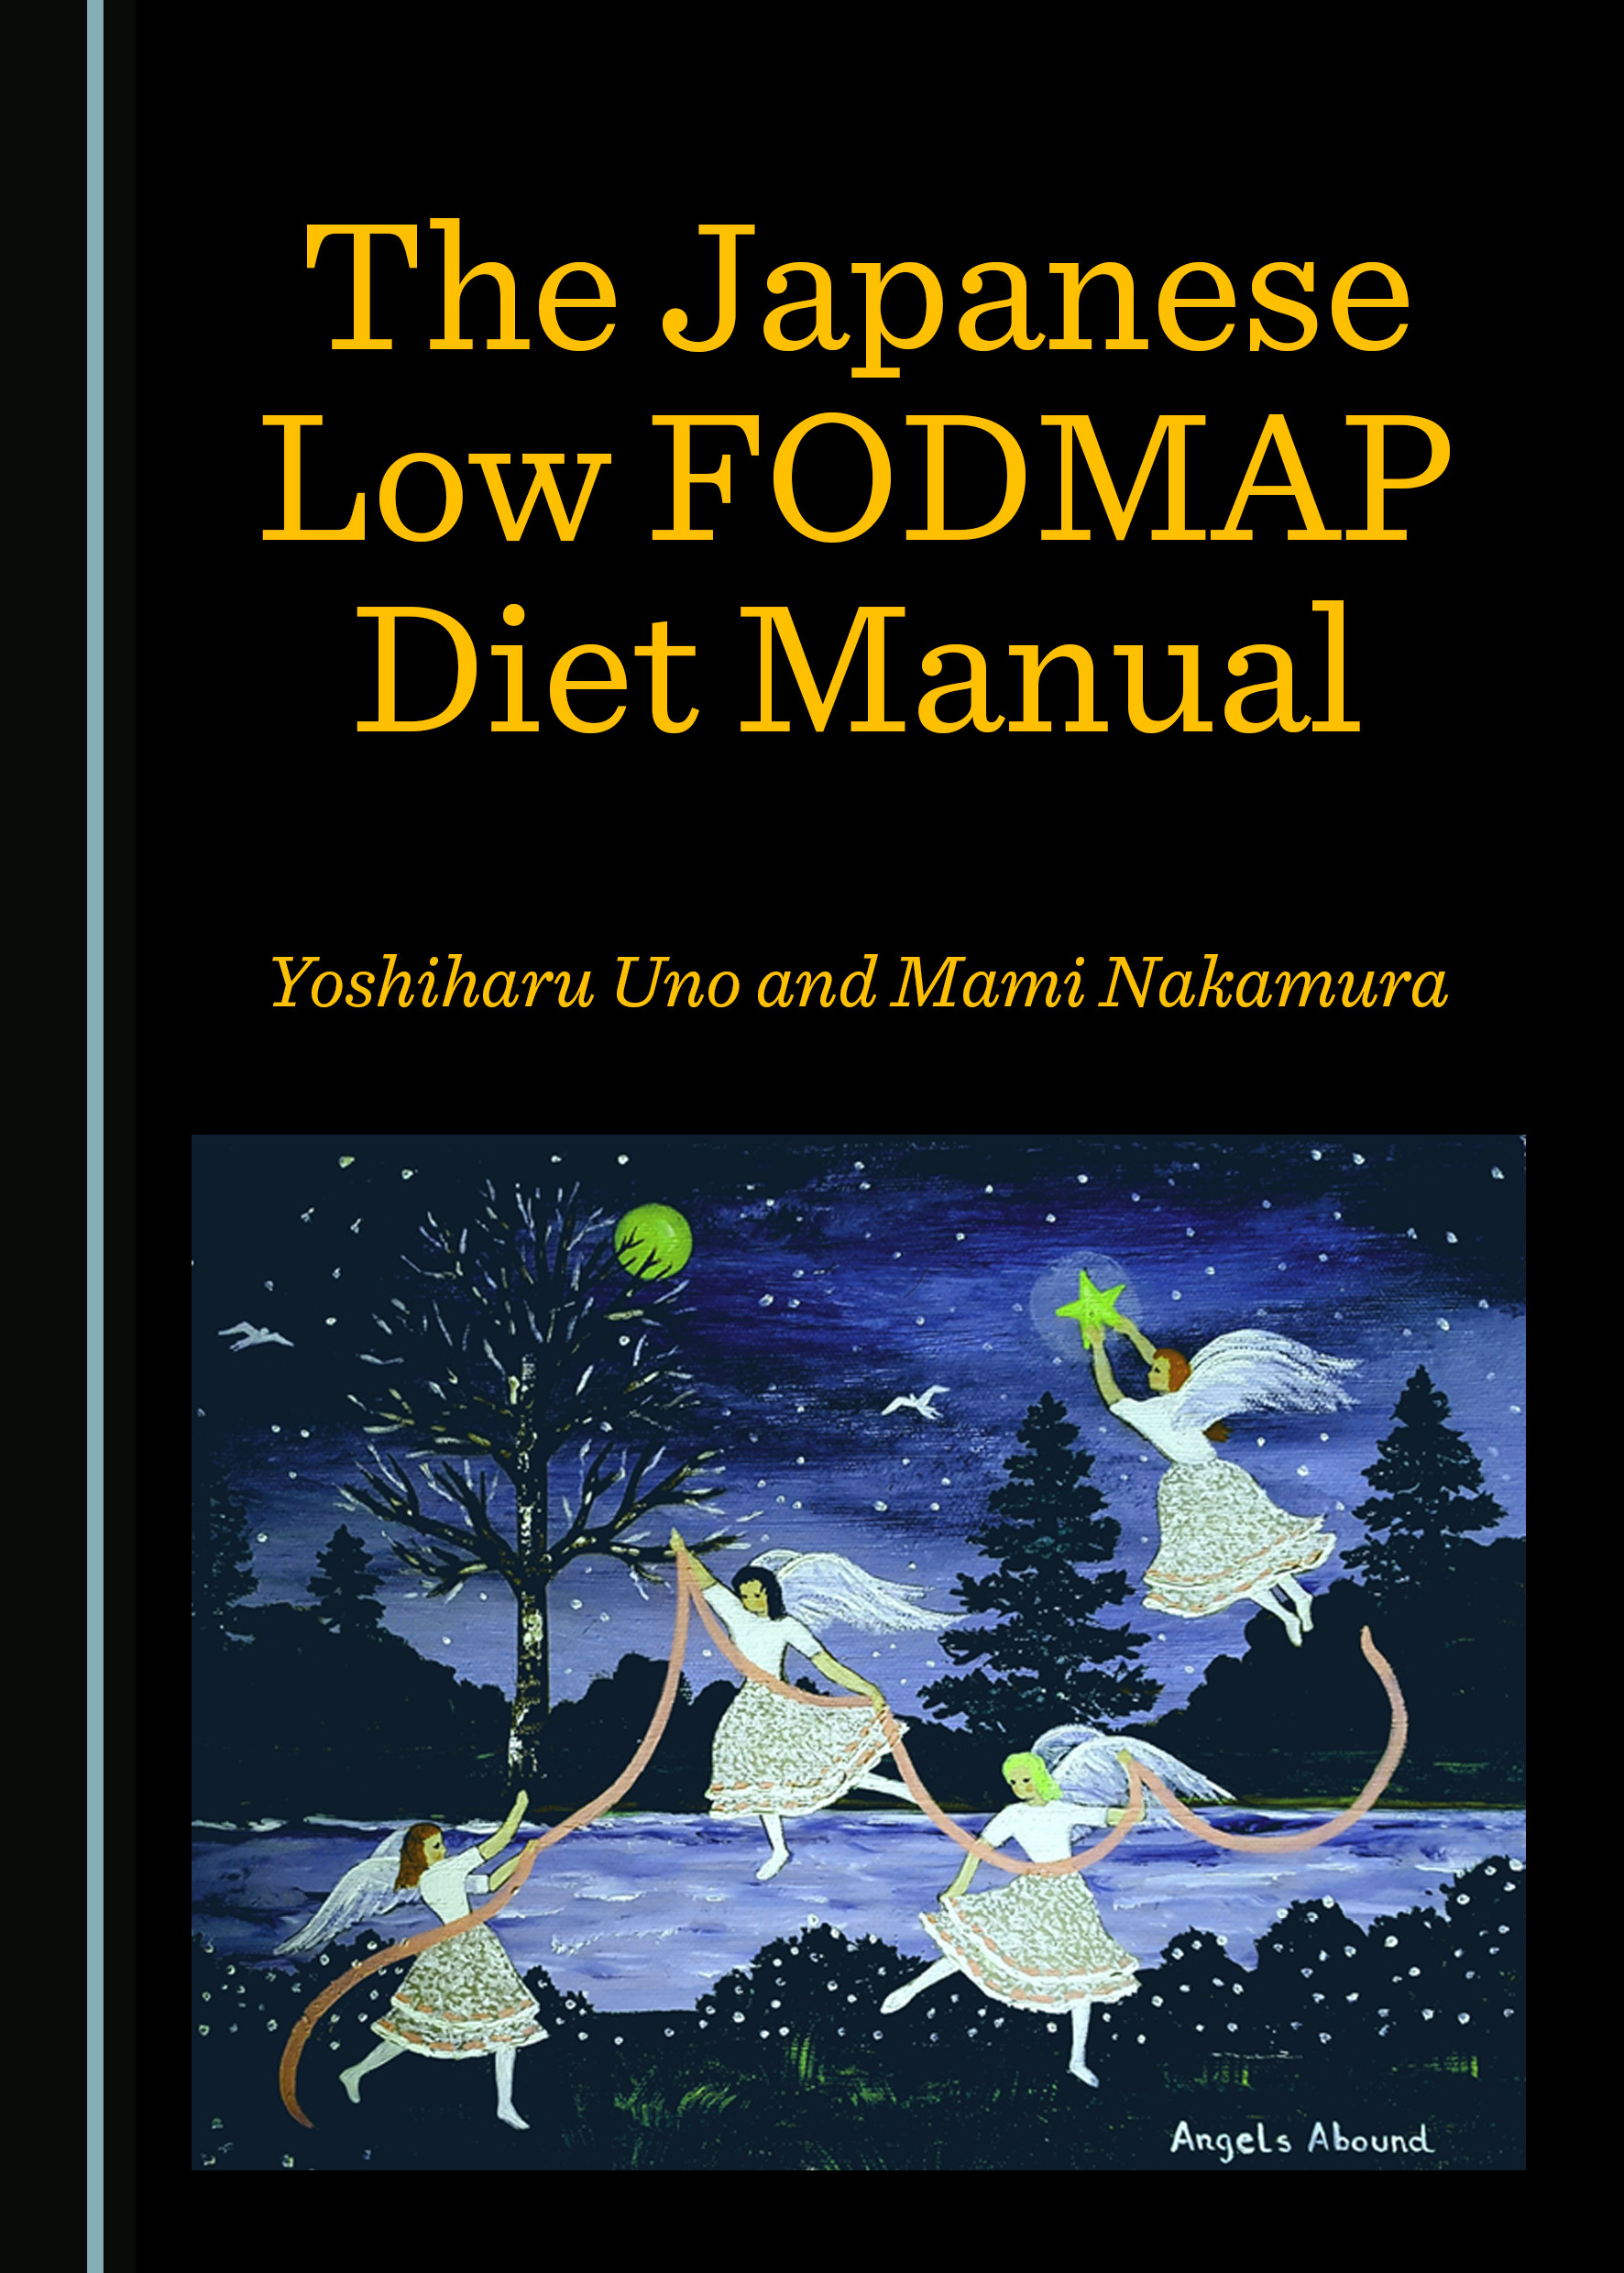 The Japanese Low FODMAP Diet Manual